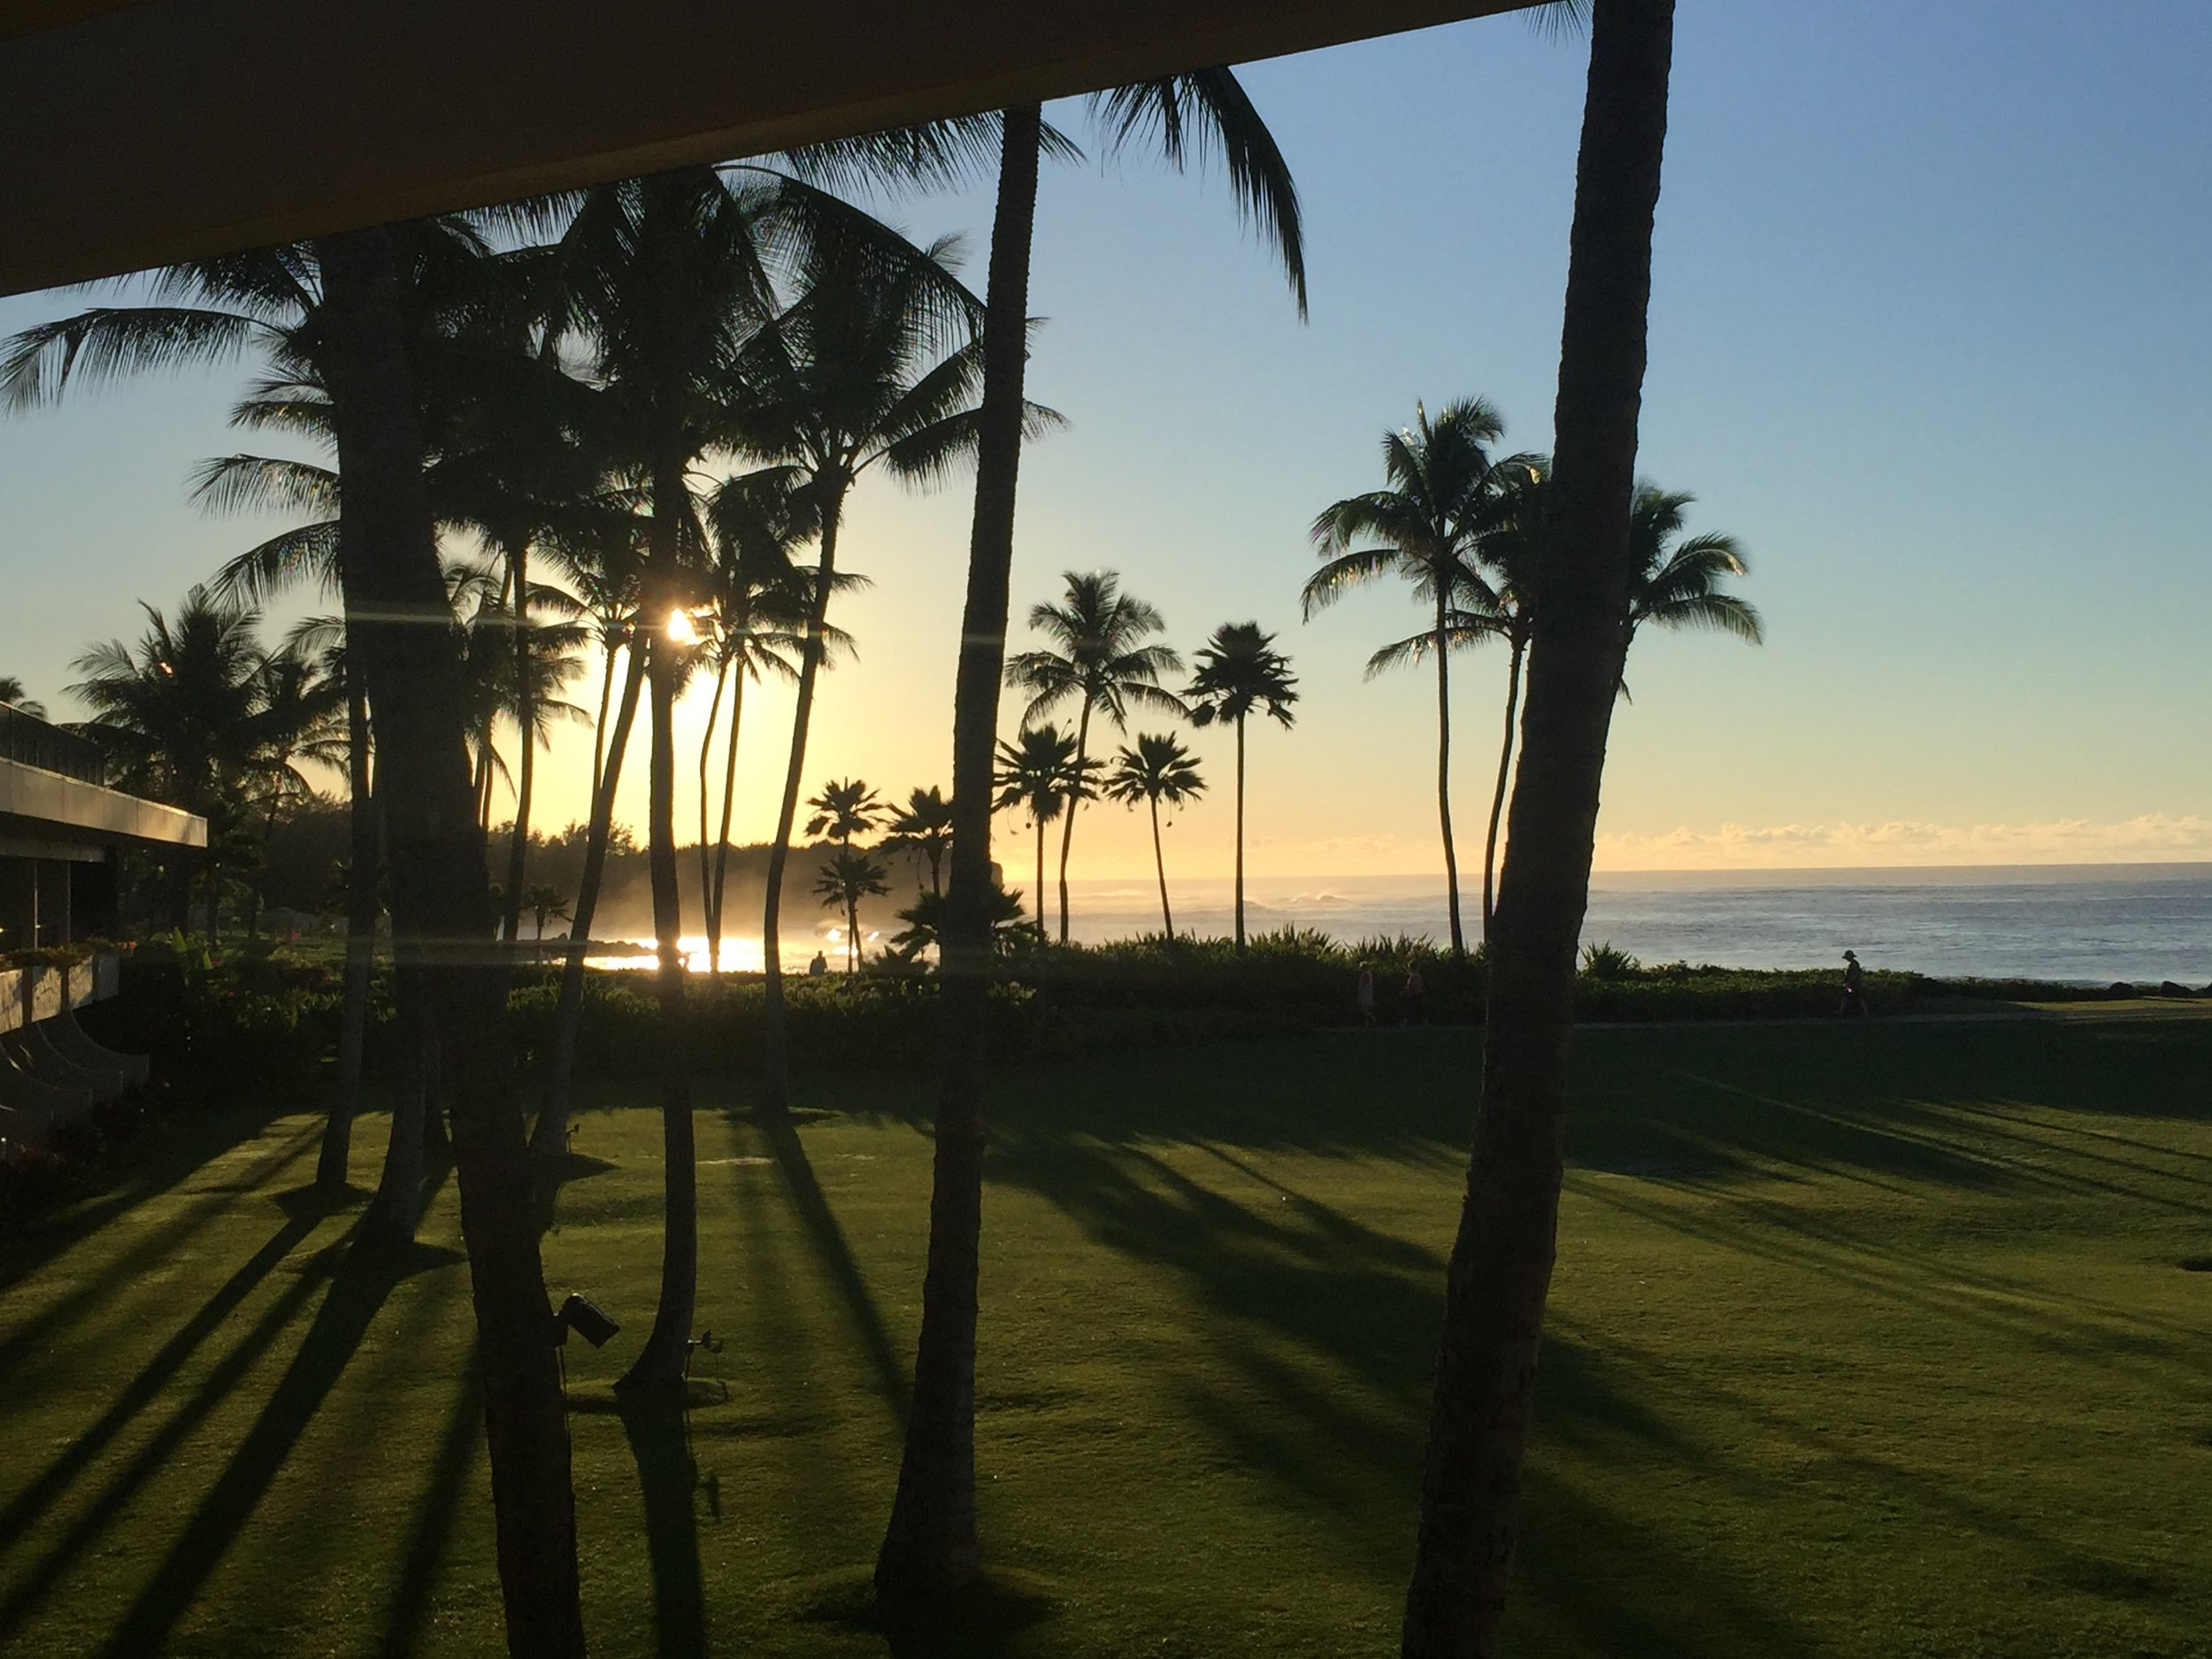 The 19th Stanford Symposium on Emergency Medicine at the Grand Hyatt on Kauai, Hawaii.